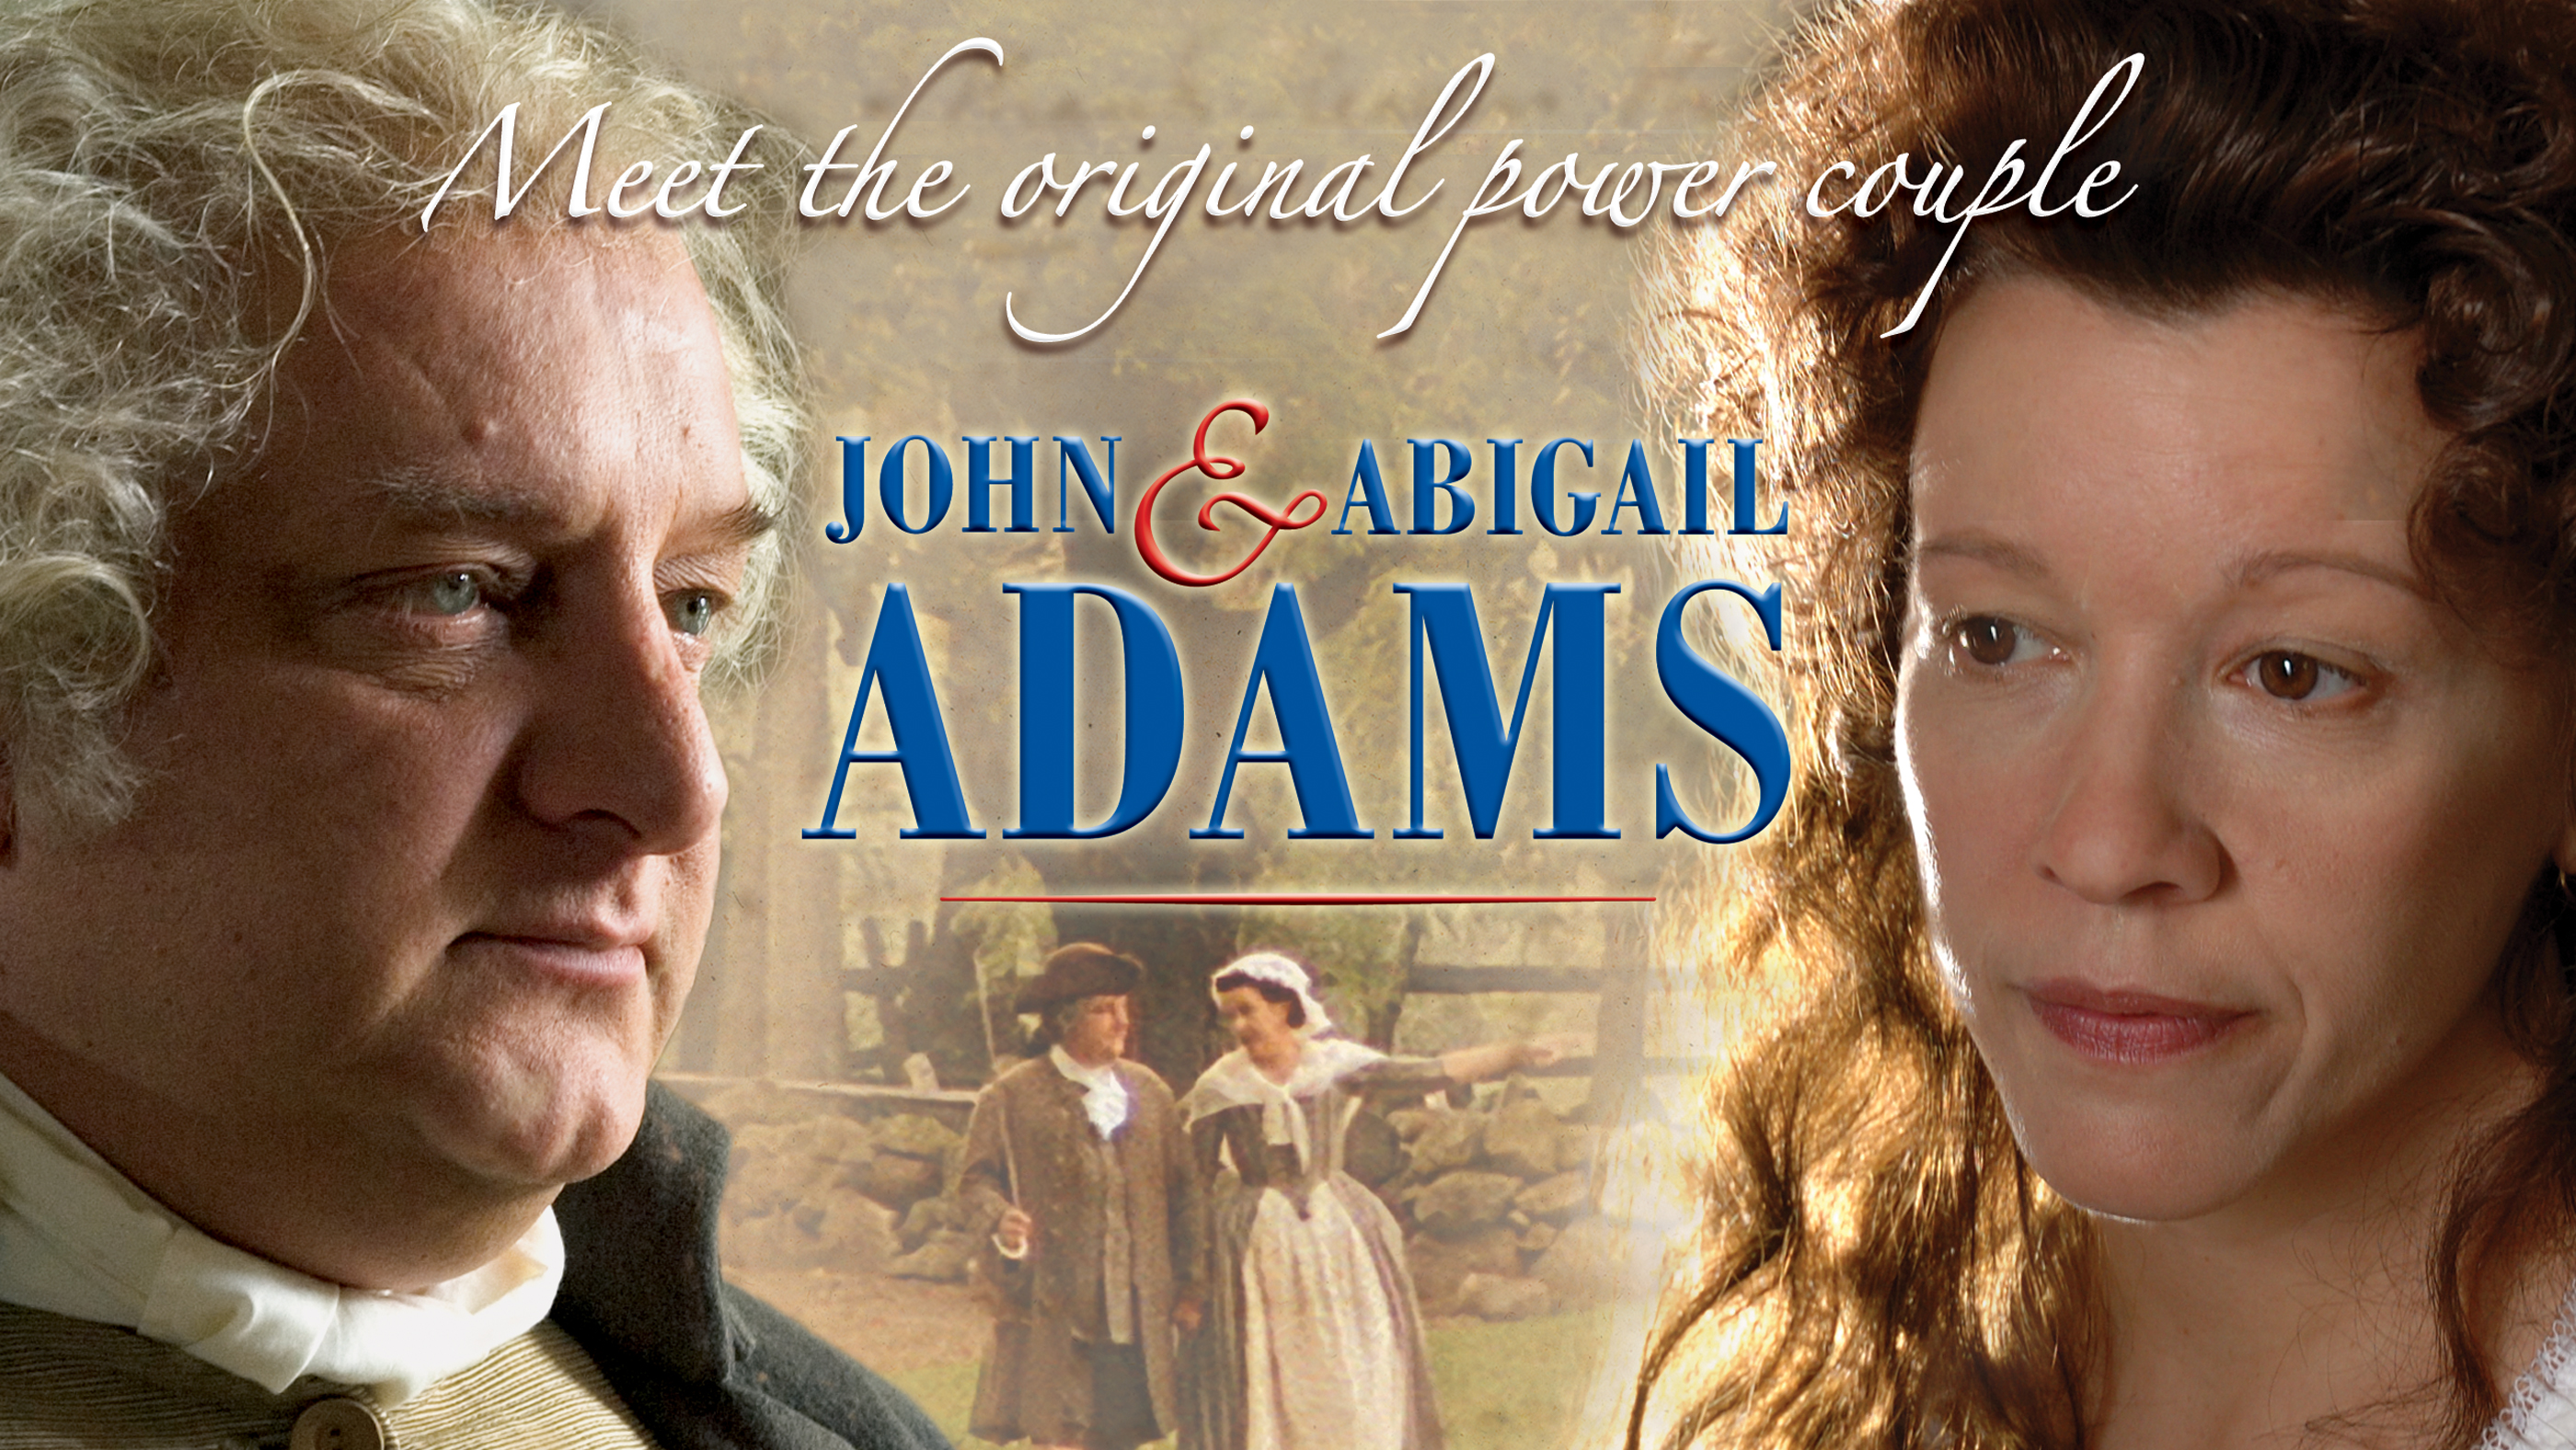 The Historical Love Story of John and Abigail Adams